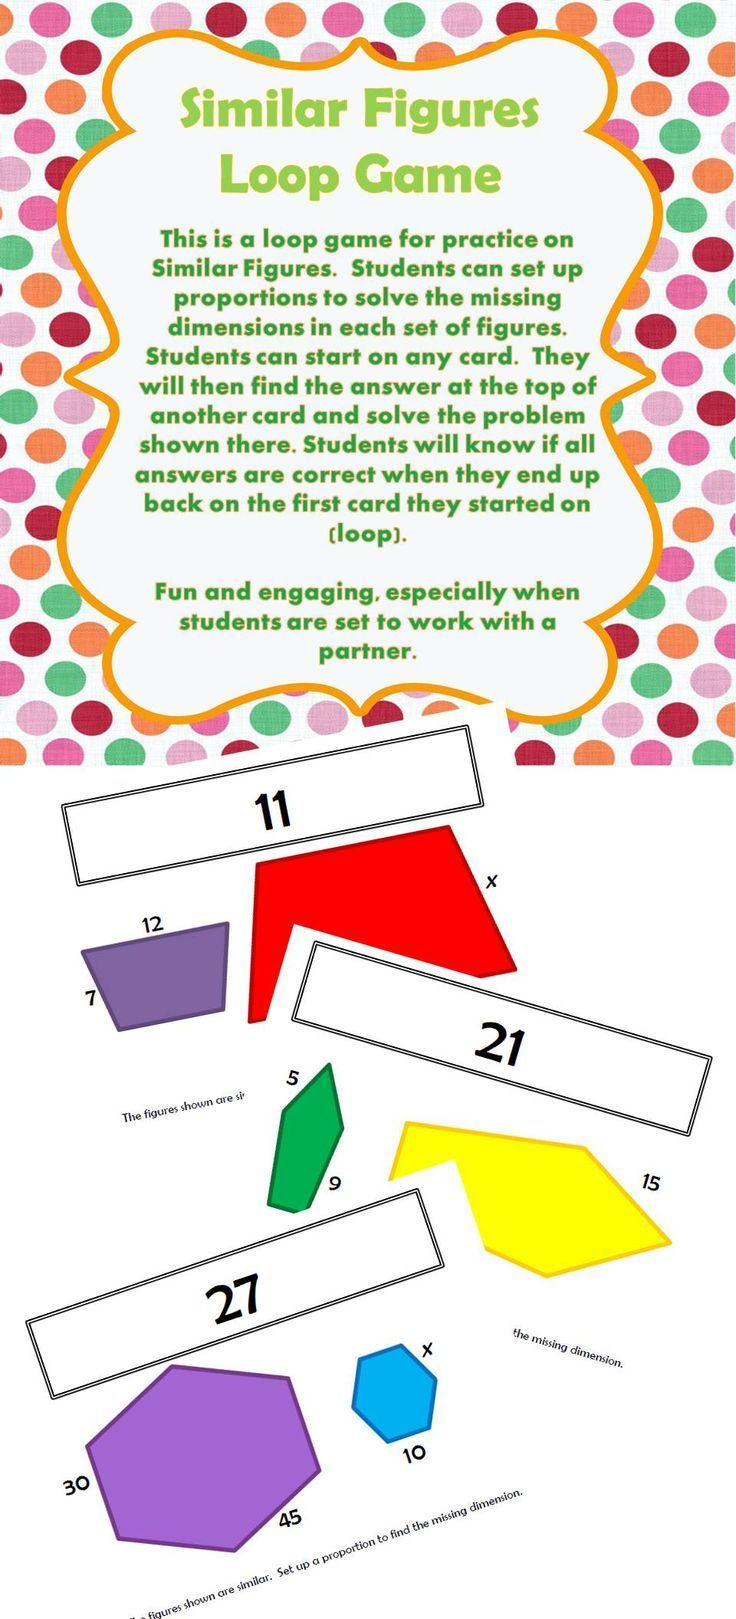 worksheet Similar Figures And Proportions Worksheets best 25 proportions worksheet ideas on pinterest kids websites similar figures loop game this is a for practice students can set up to solve the missi